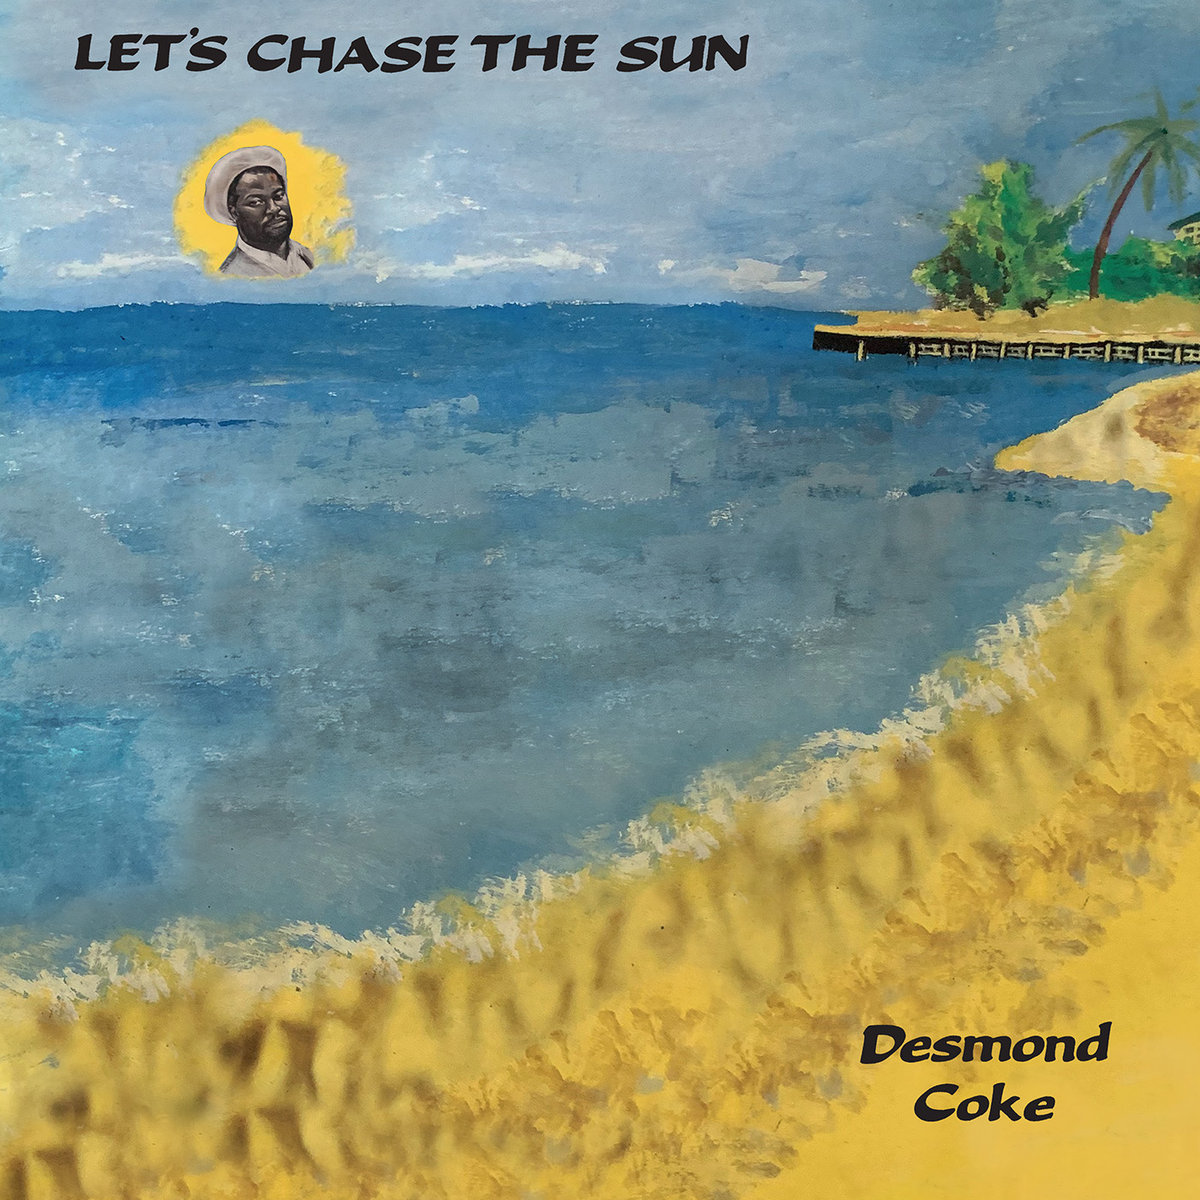 For their next release, the label presents singer, songwriter, composer and multi-instrumentalist, Desmond Coke's rare, privately pressed LP, Let's Chase The Sun in edited form.